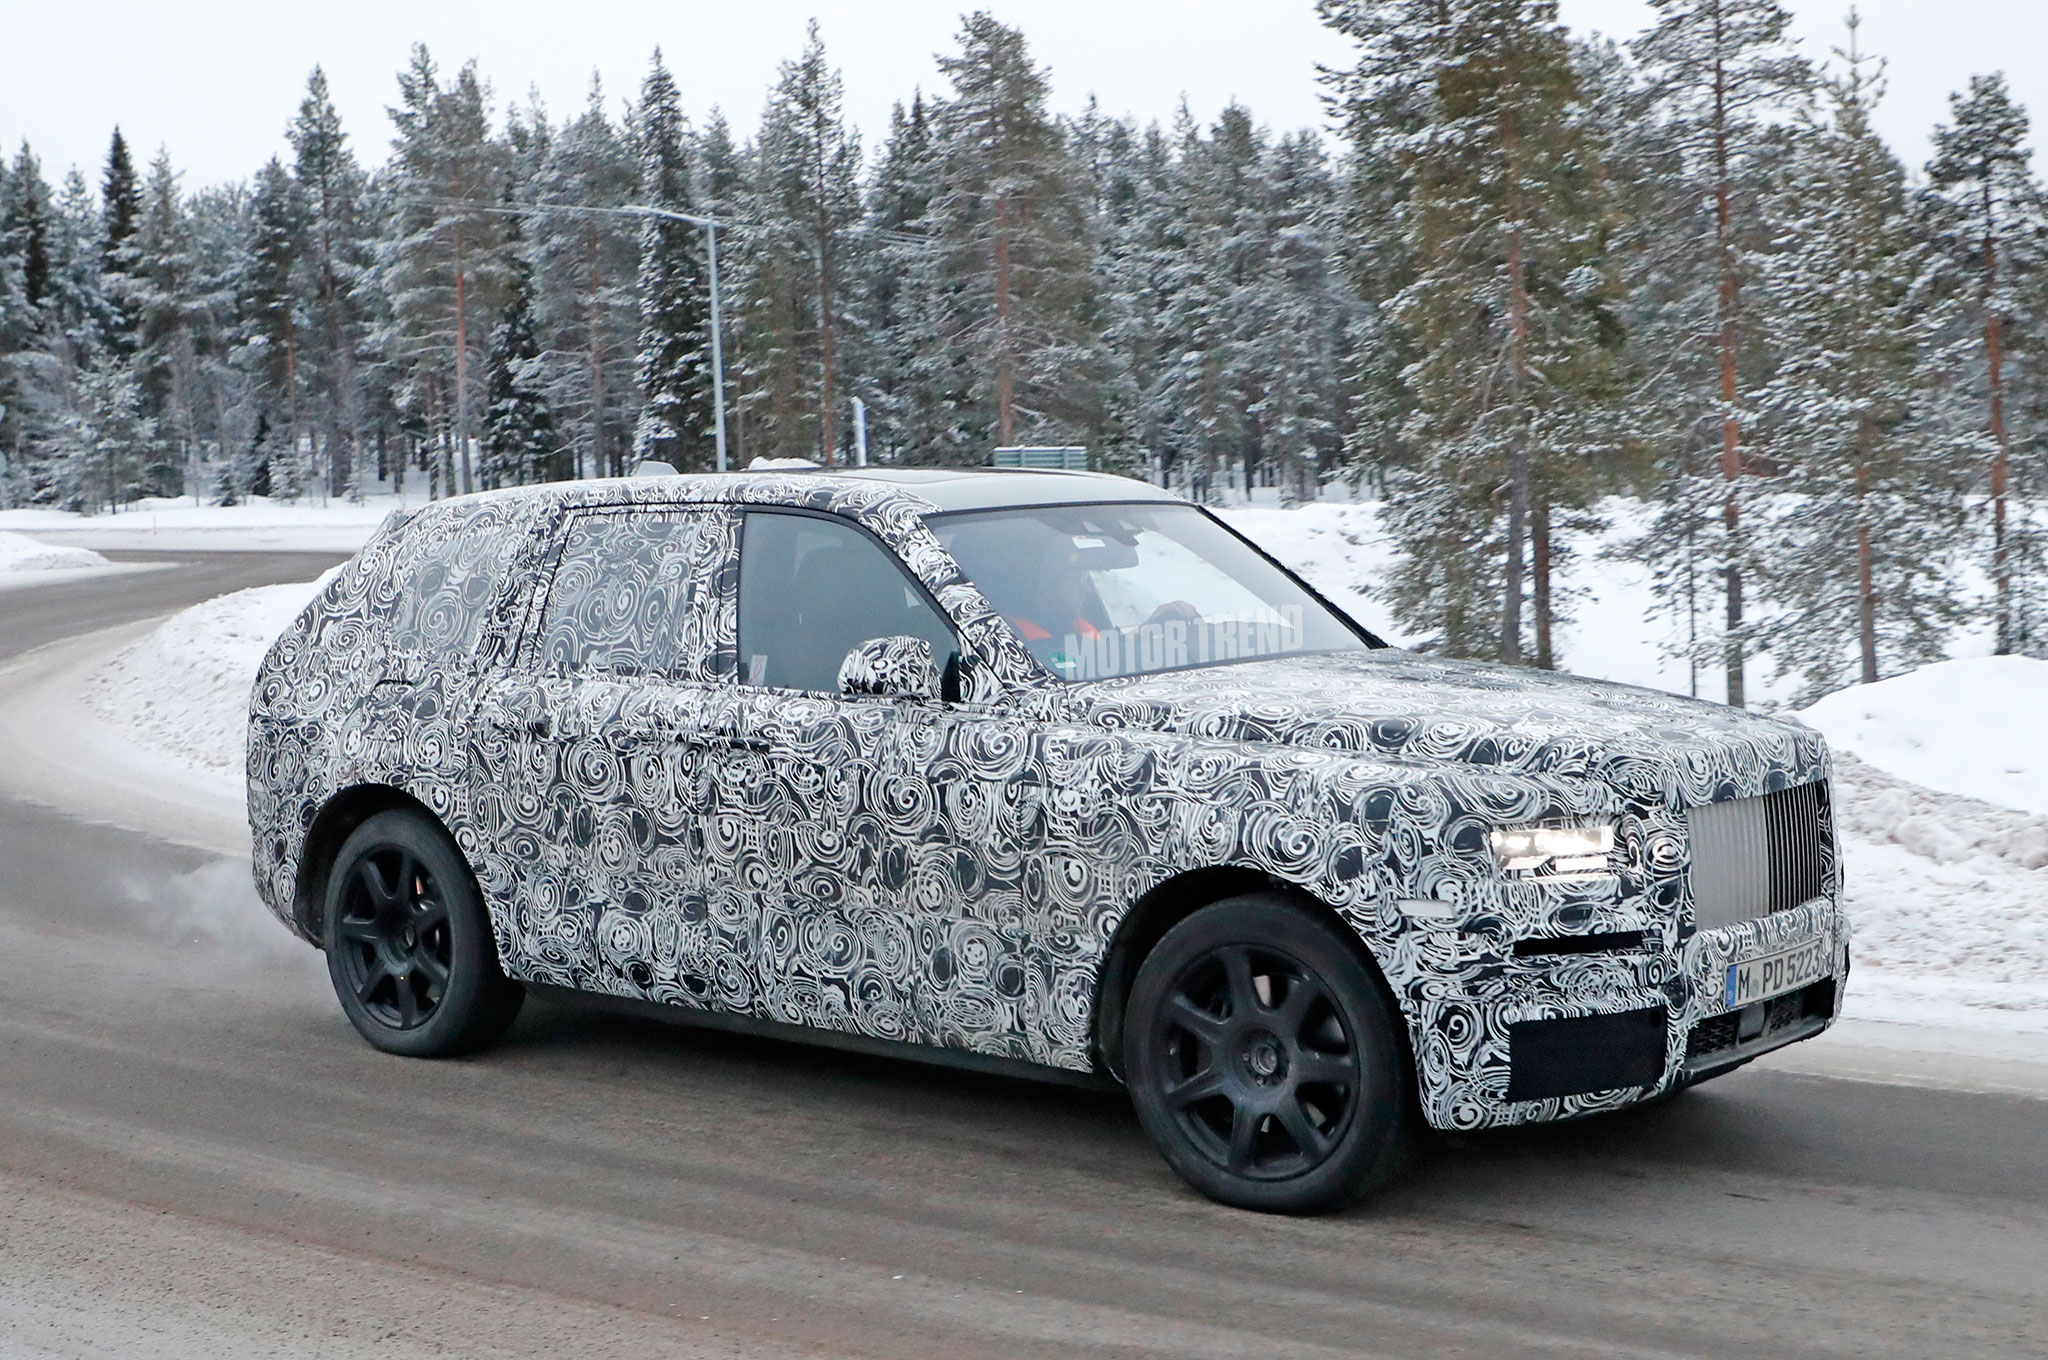 rolls royce cullinan suv gets spied in snowy tests bmwcoop. Black Bedroom Furniture Sets. Home Design Ideas